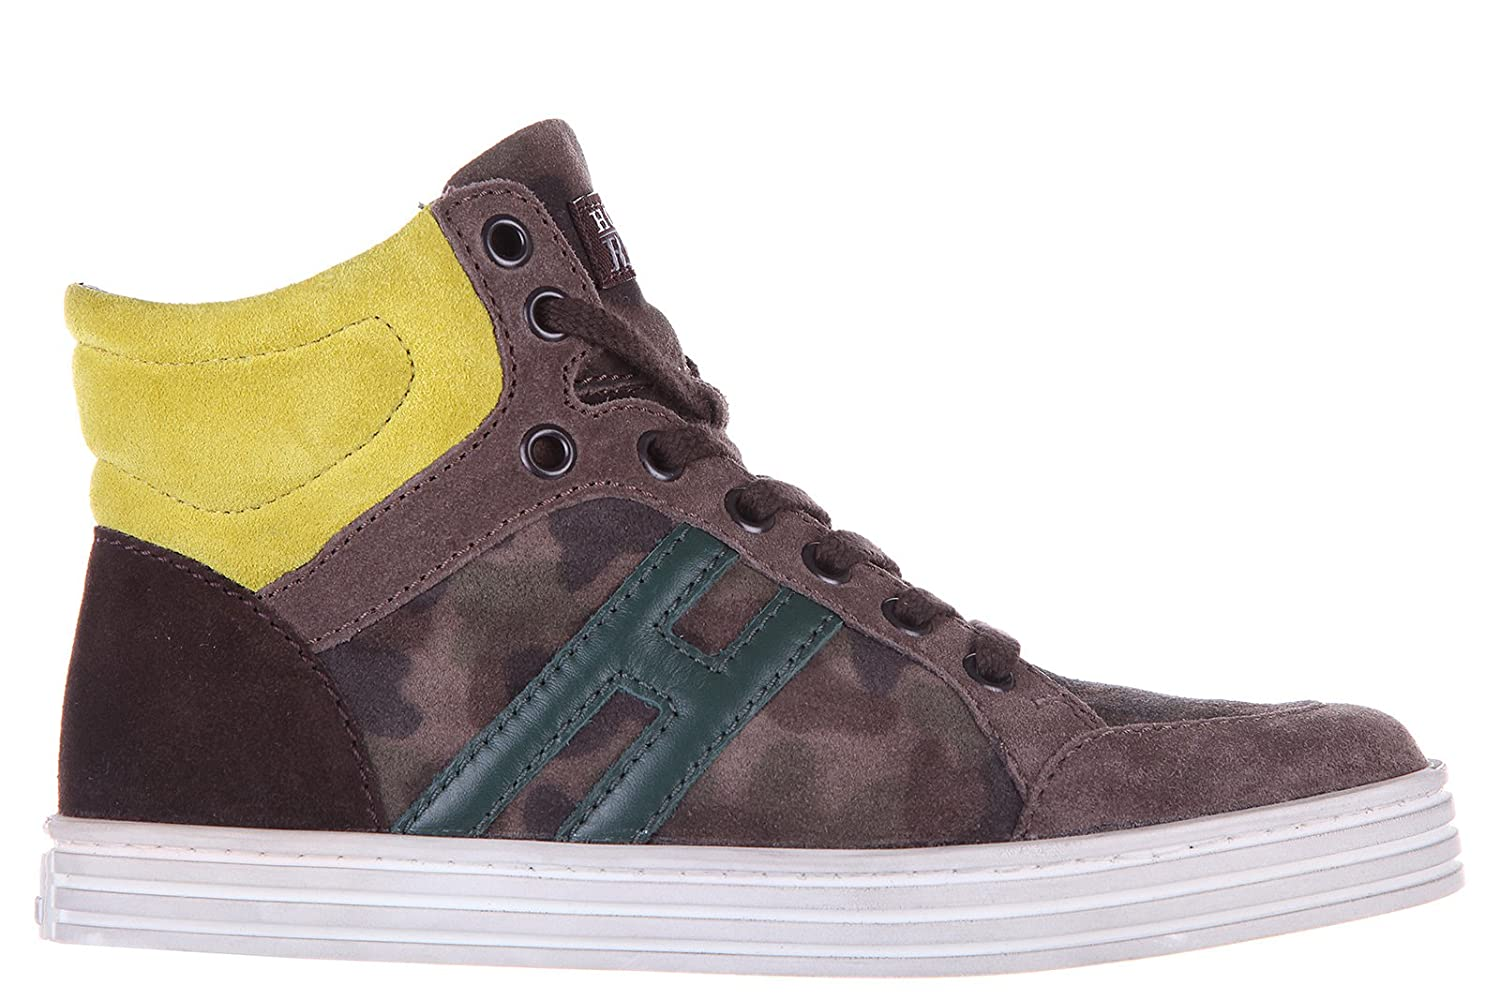 7afe12b22791d Hogan Rebel Boys Shoes Child Sneakers high top Suede Leather Rebel  Camouflage br: Amazon.co.uk: Shoes & Bags